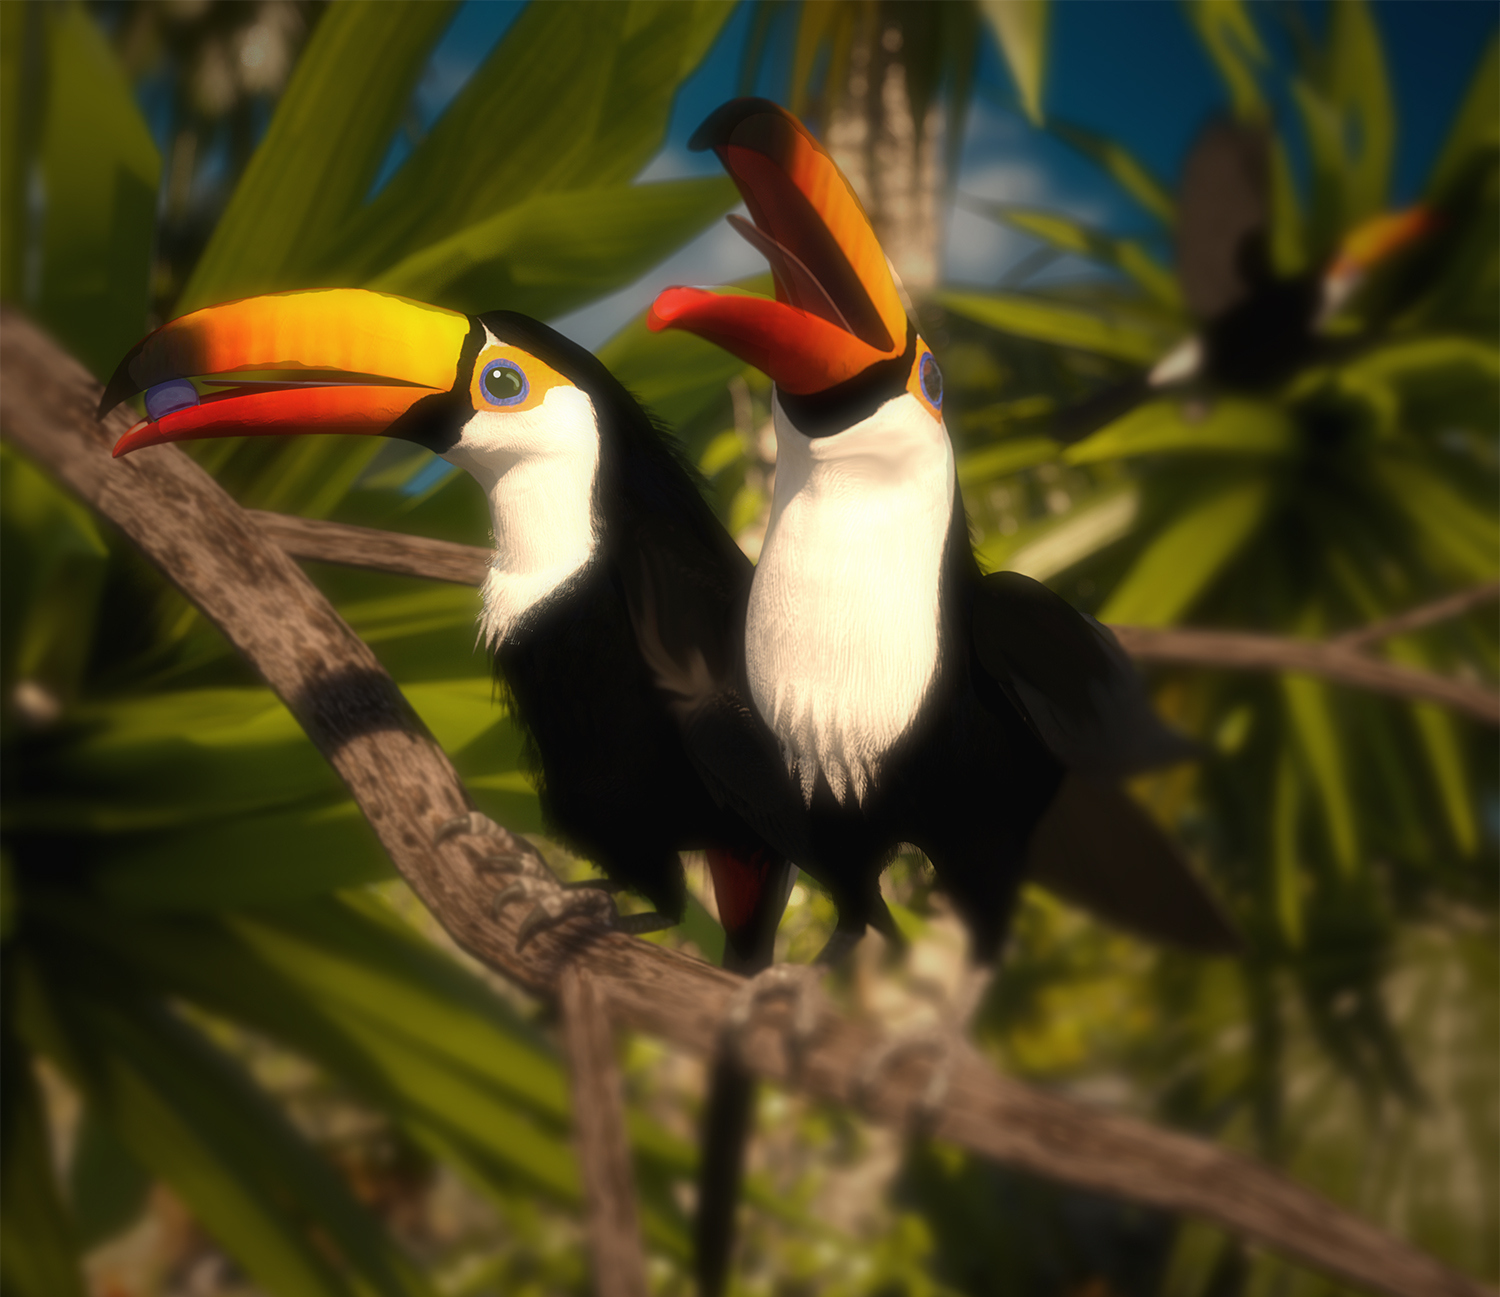 Third place Sunny Toucans by Trouble.jpg